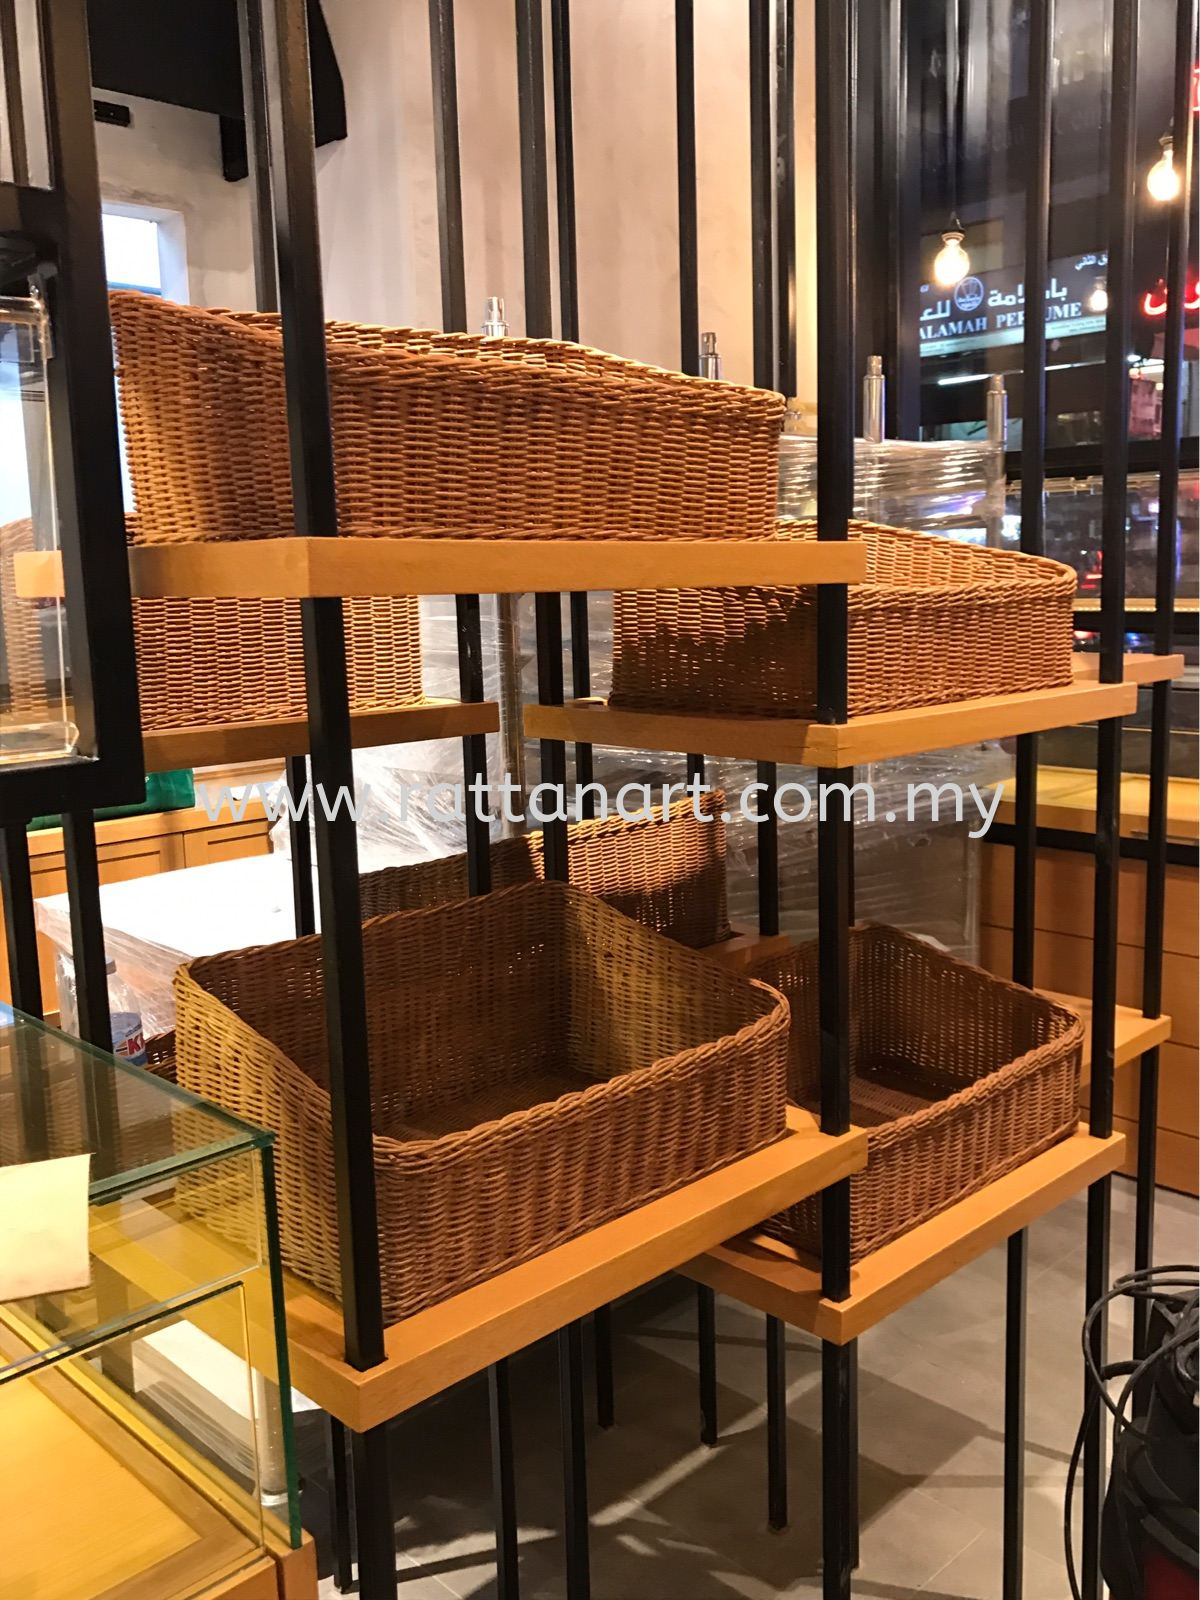 RATTAN ART SUPPLY TO HOGAN BAKERY LION TOWER @ BUKIT BINTANG